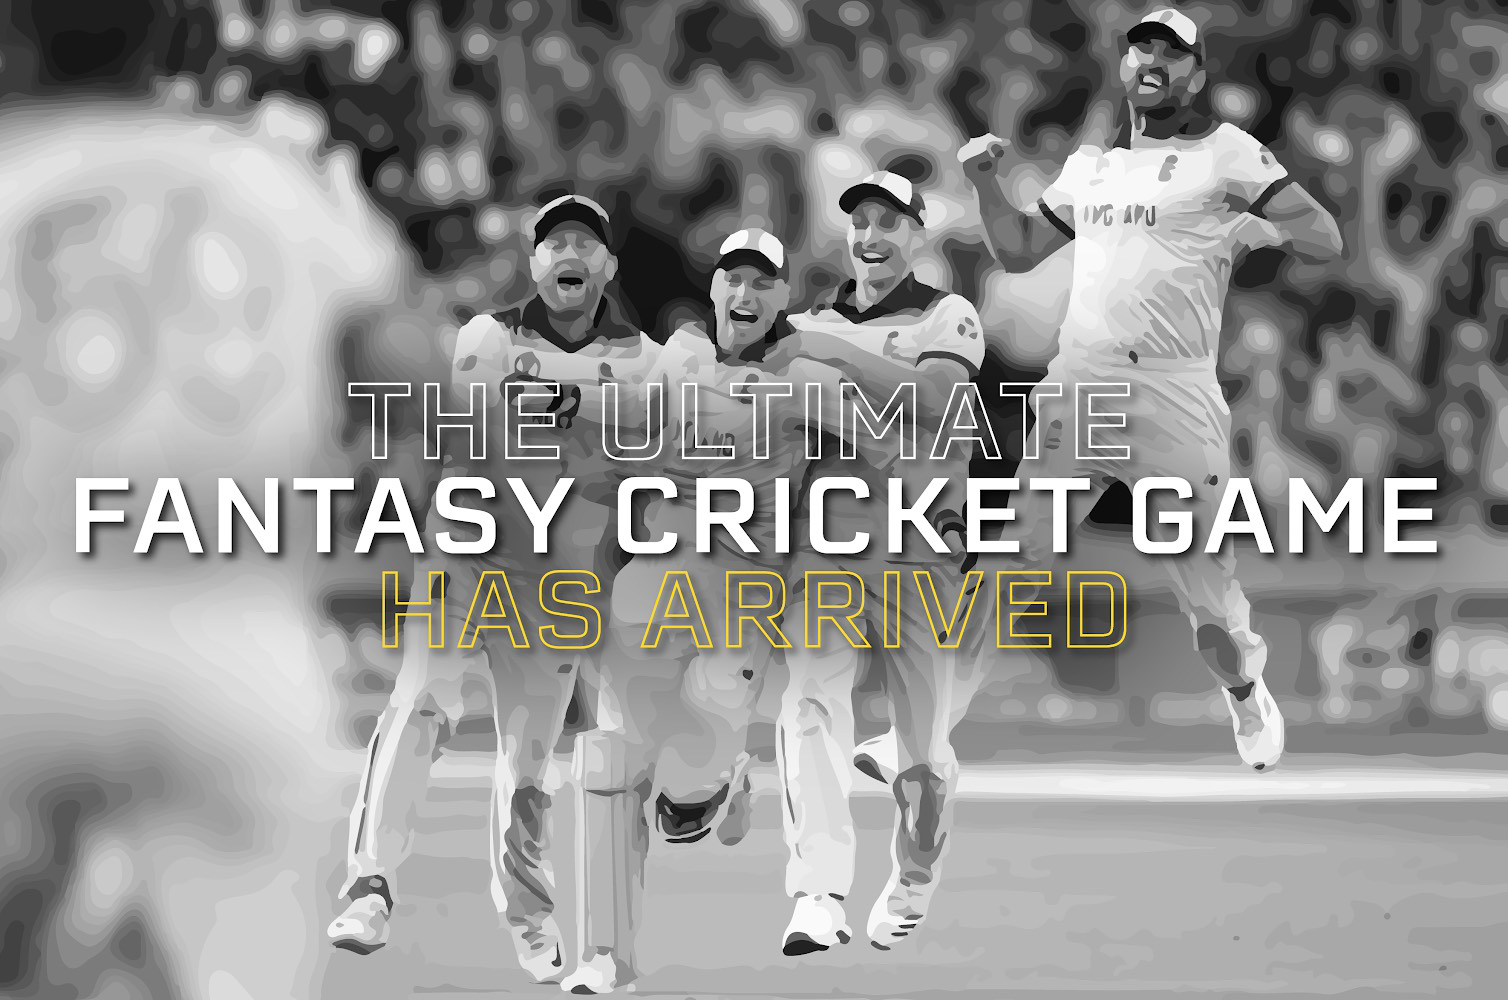 The Ultimate Fantasy Cricket Game